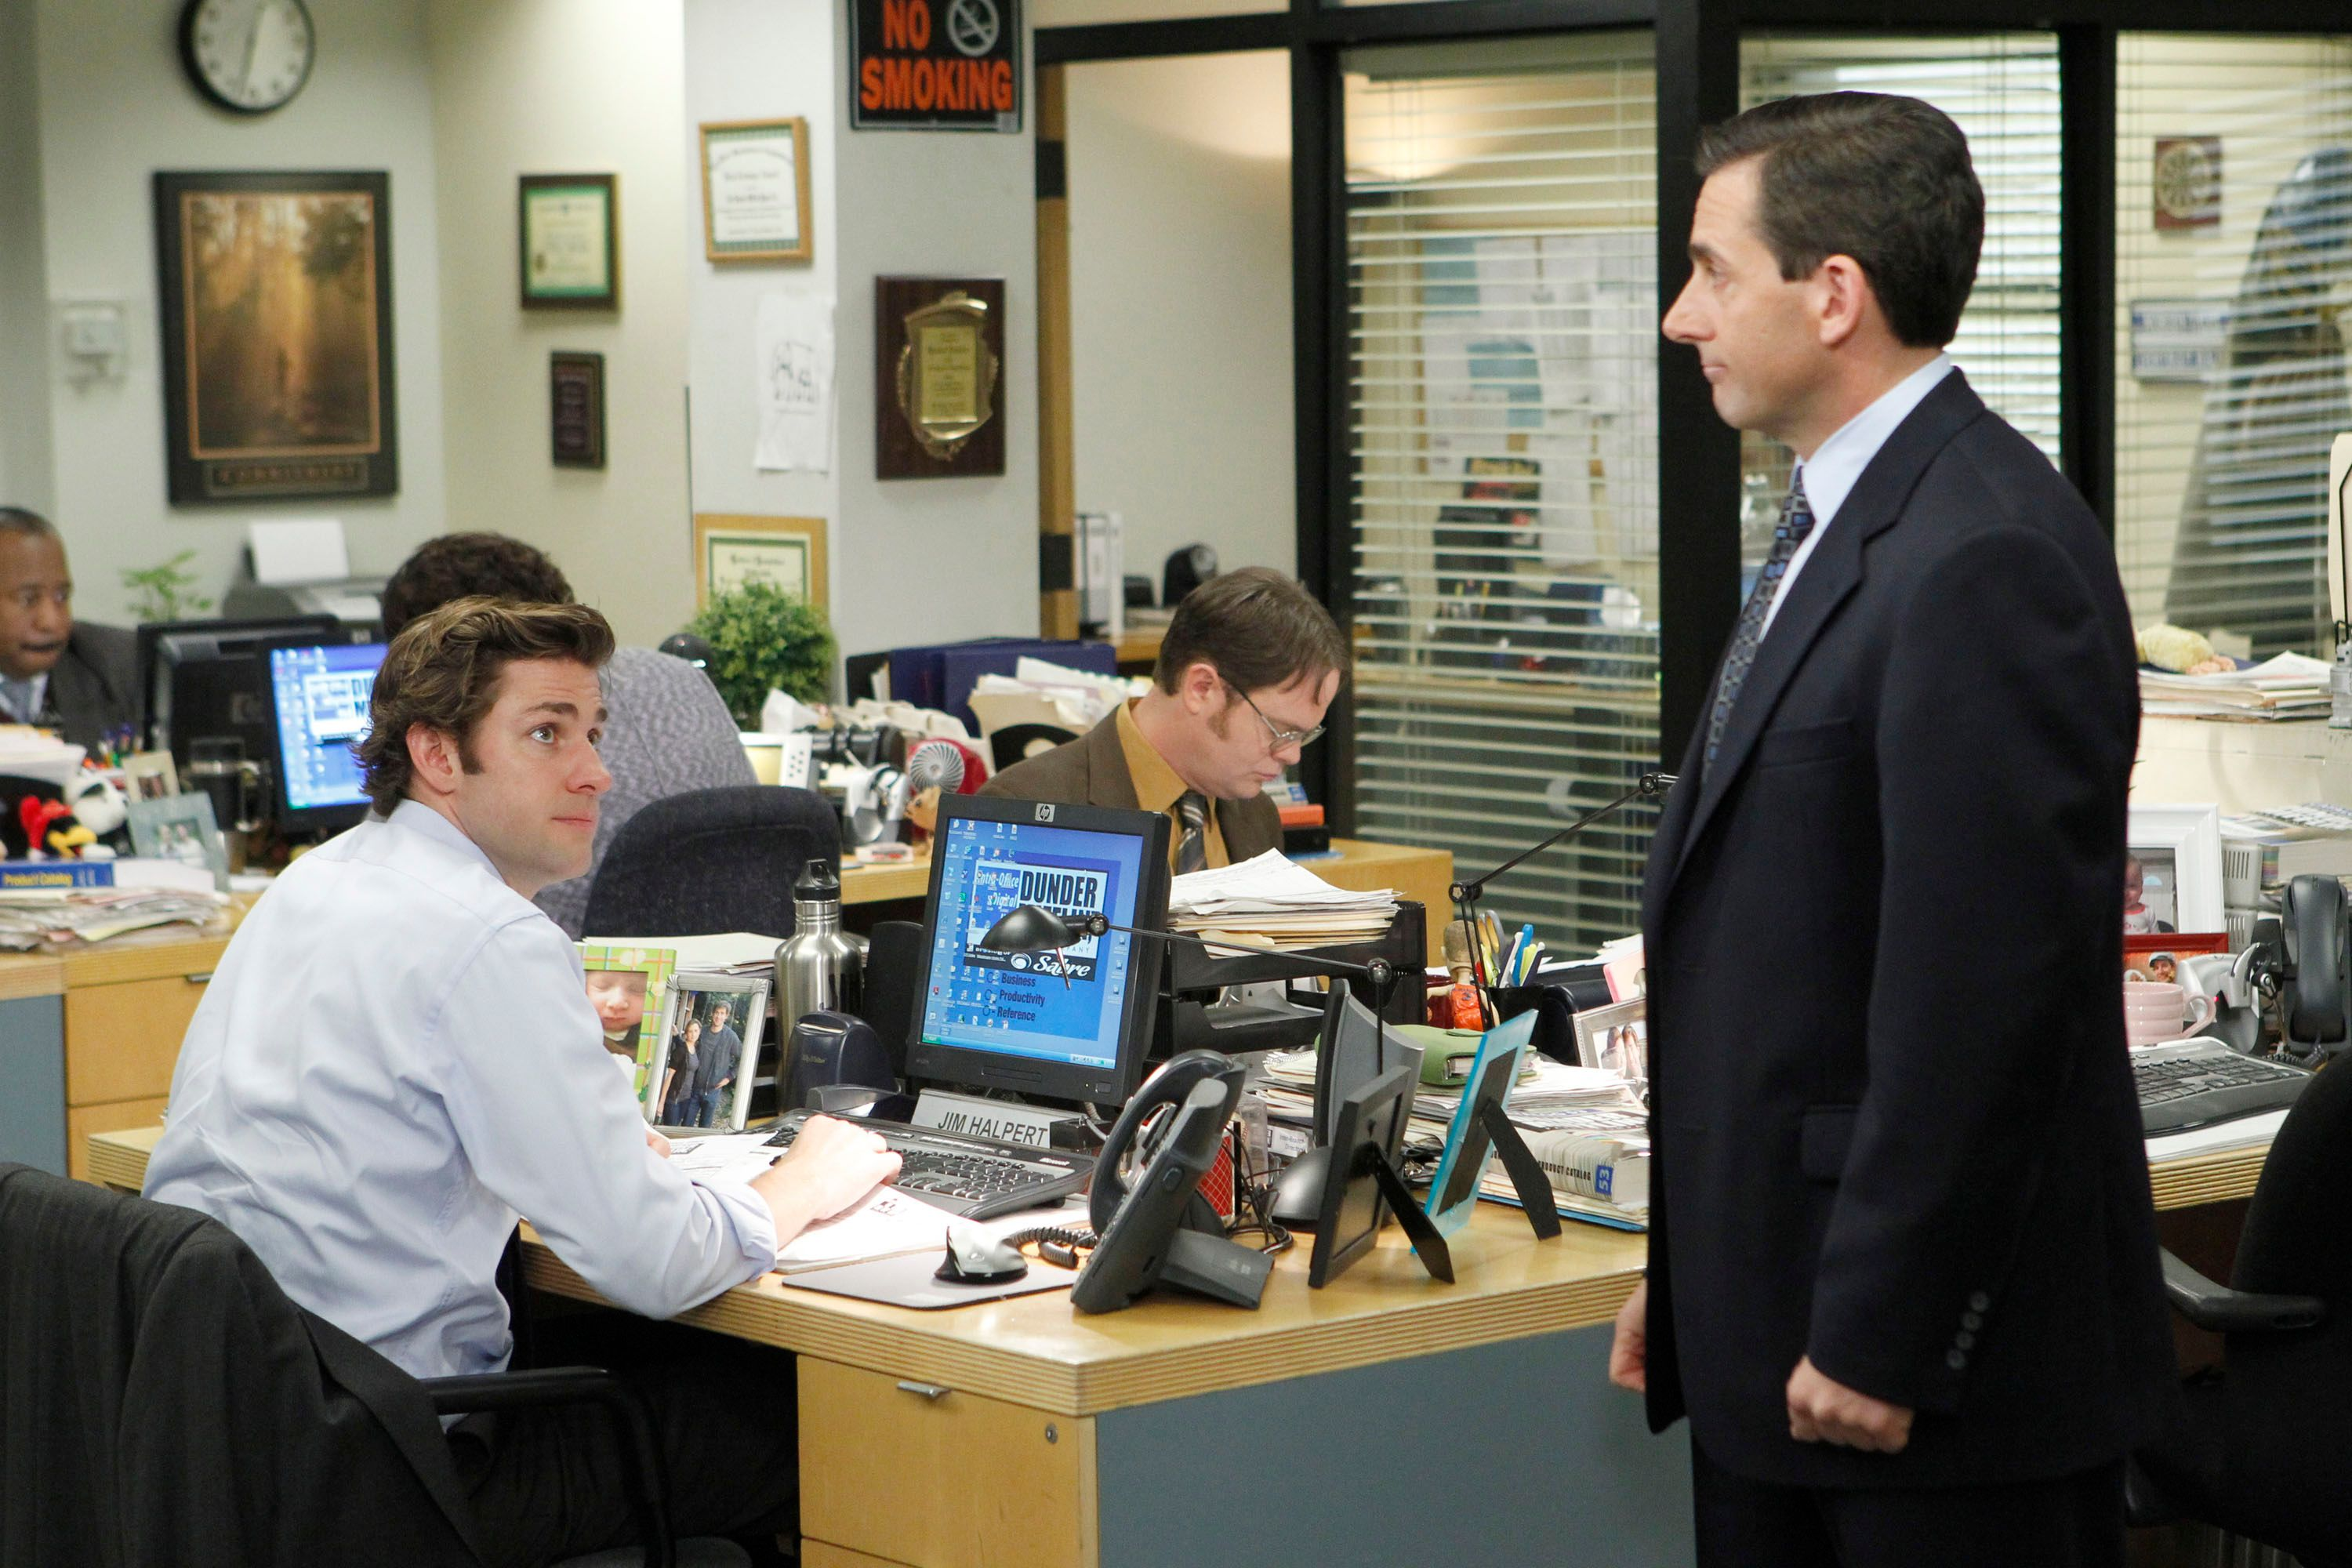 Steve Carell stands by John Krasinski where he sits at his desk on the set of The Office